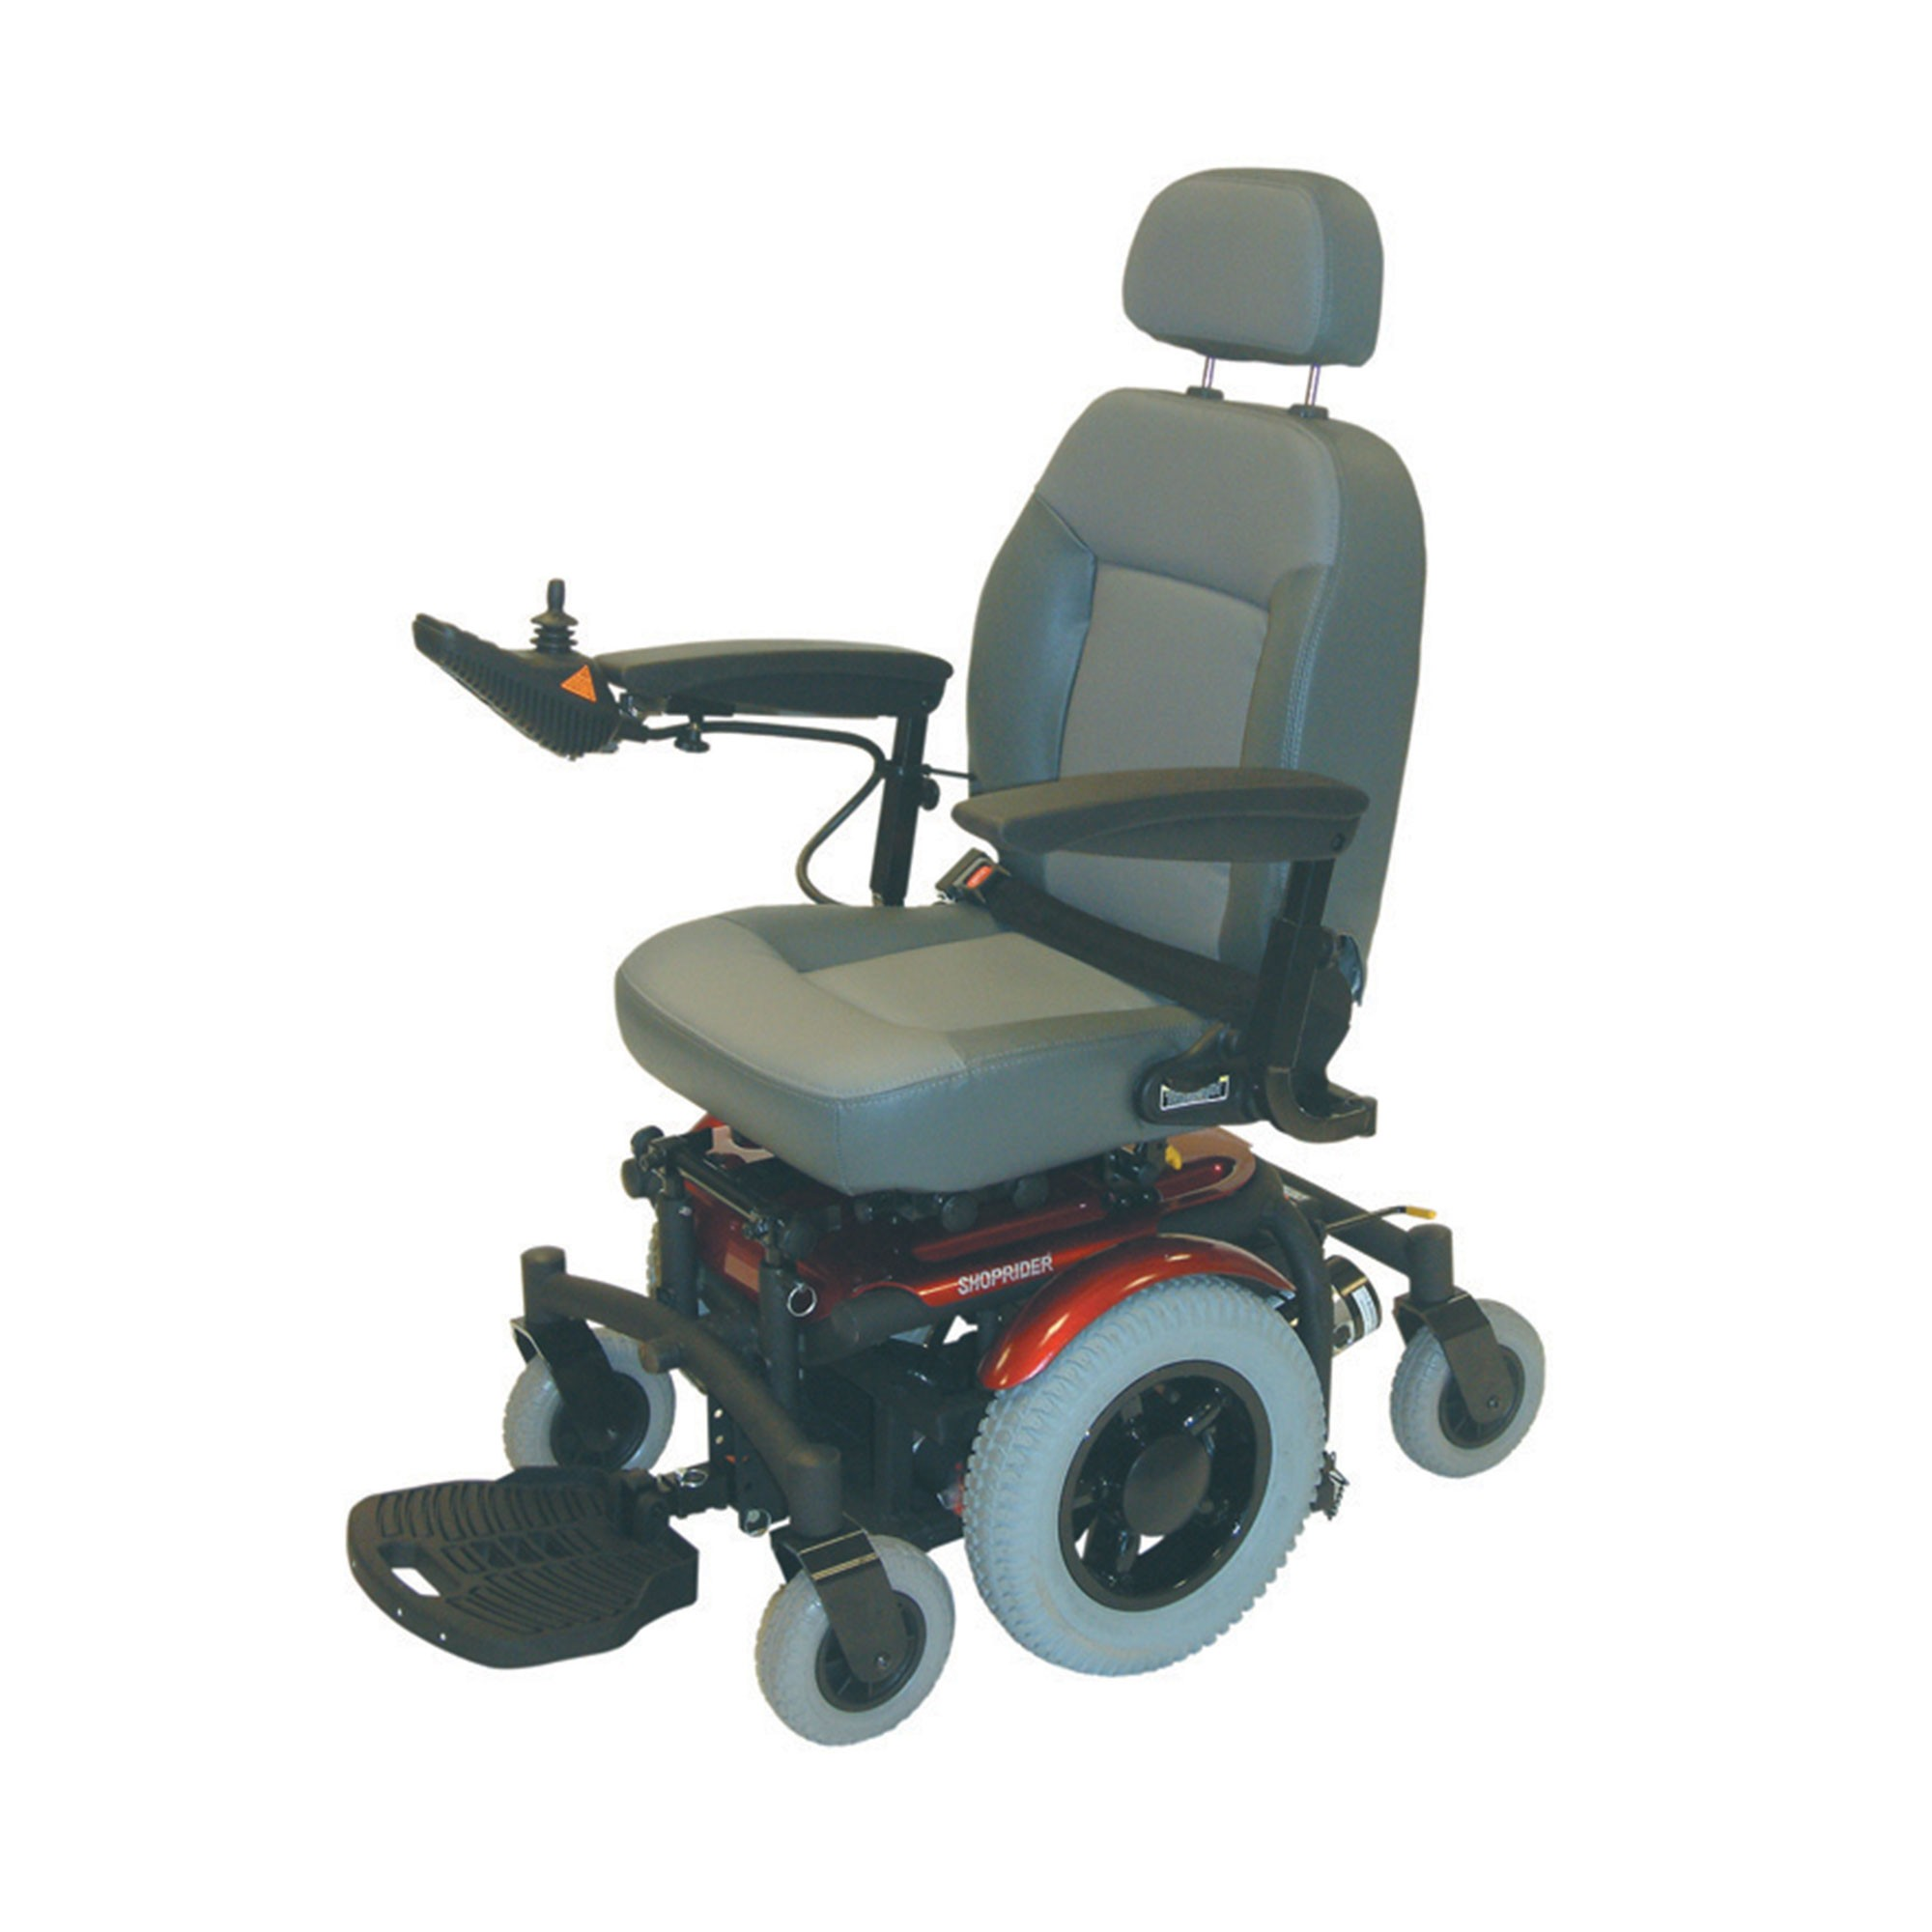 Electric Chair Mobility Roma Lugano Electric Wheelchair Delvered Next Day For Free